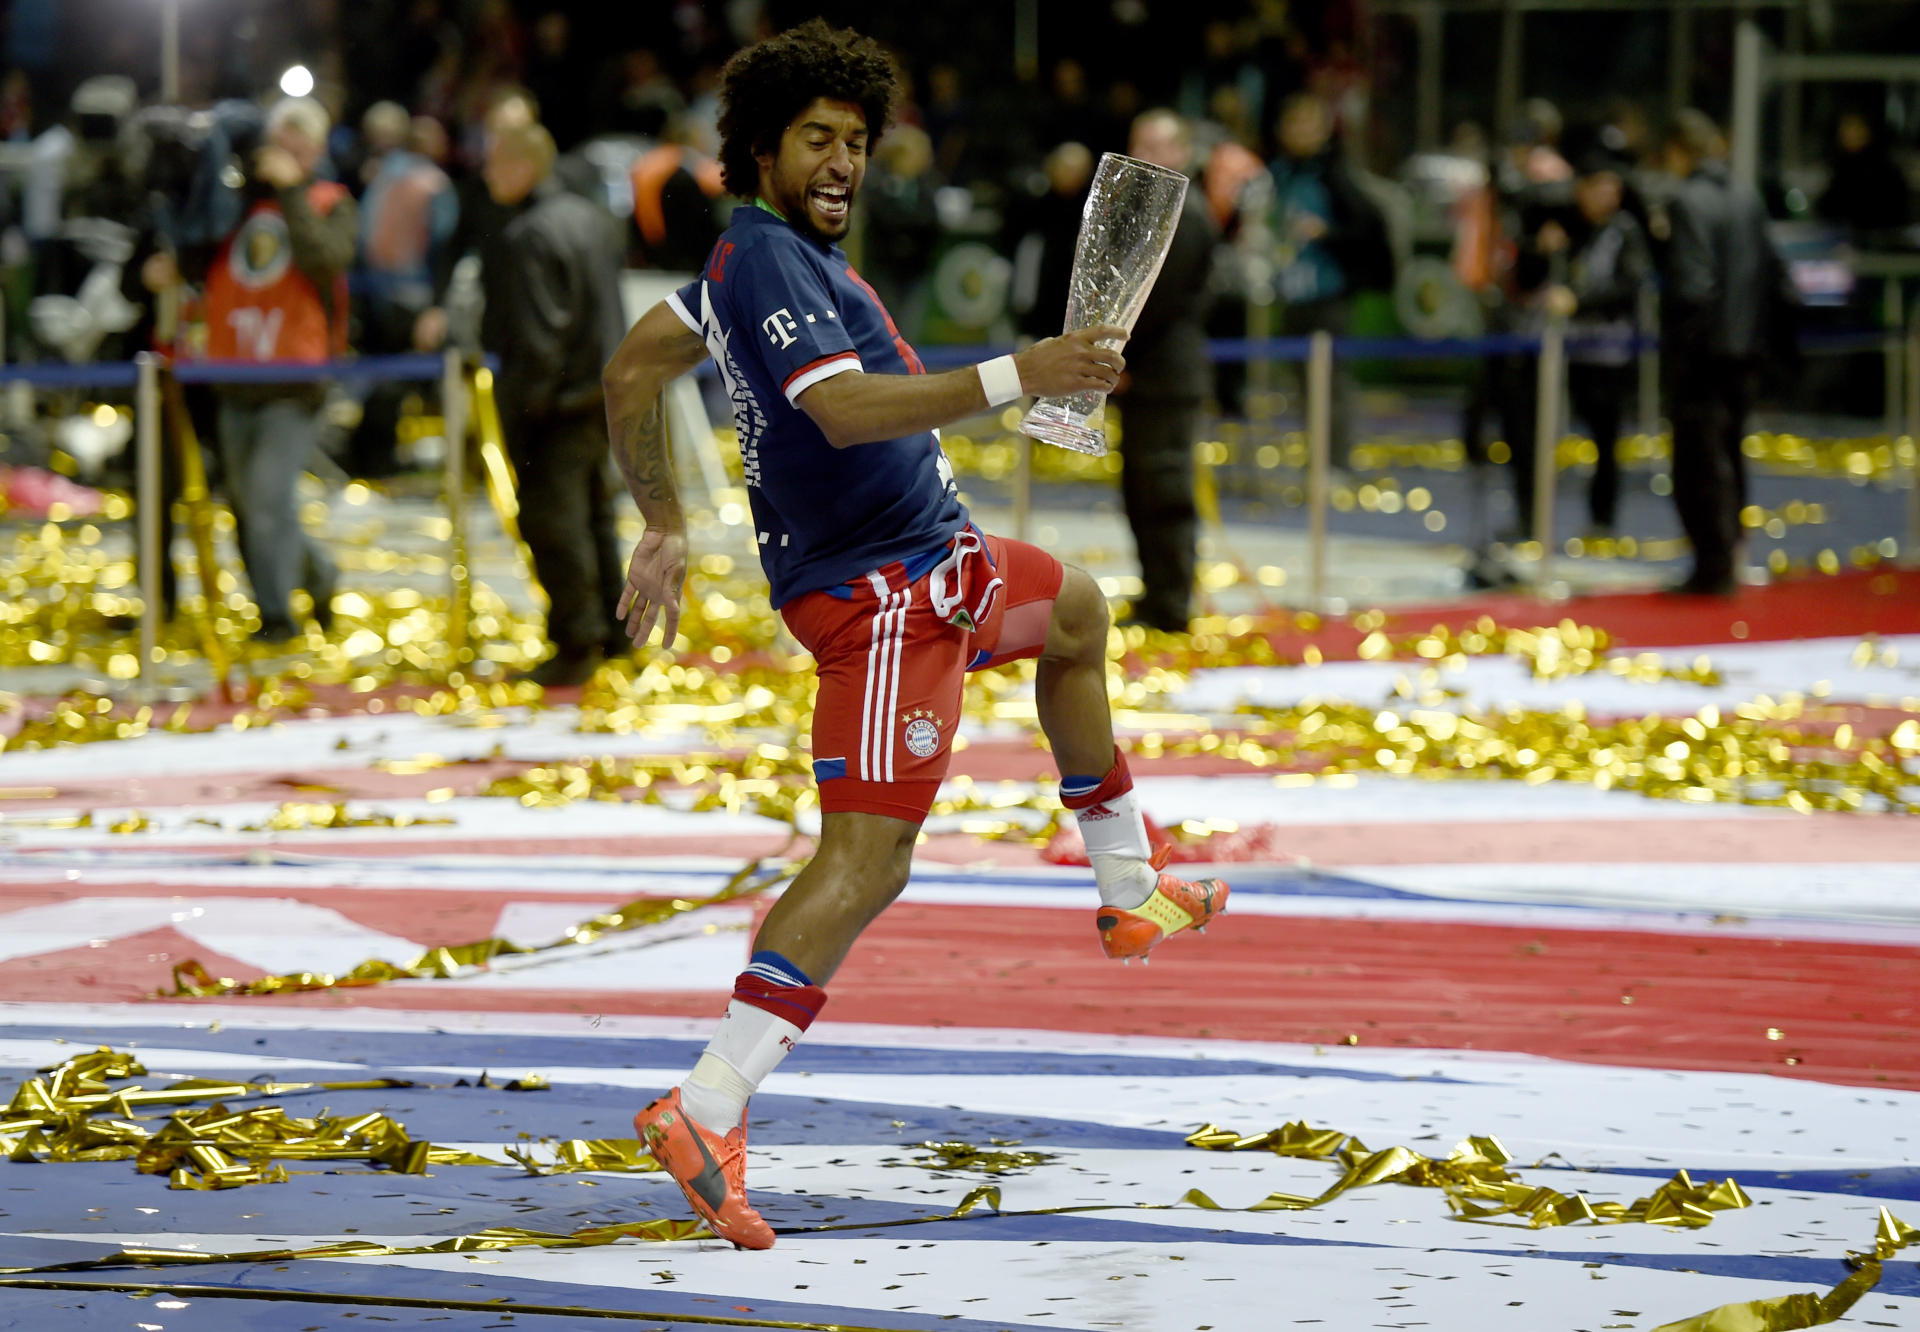 Bayern Munich's Dante celebrates after DFB-Cup win vs Borussia Dortmund